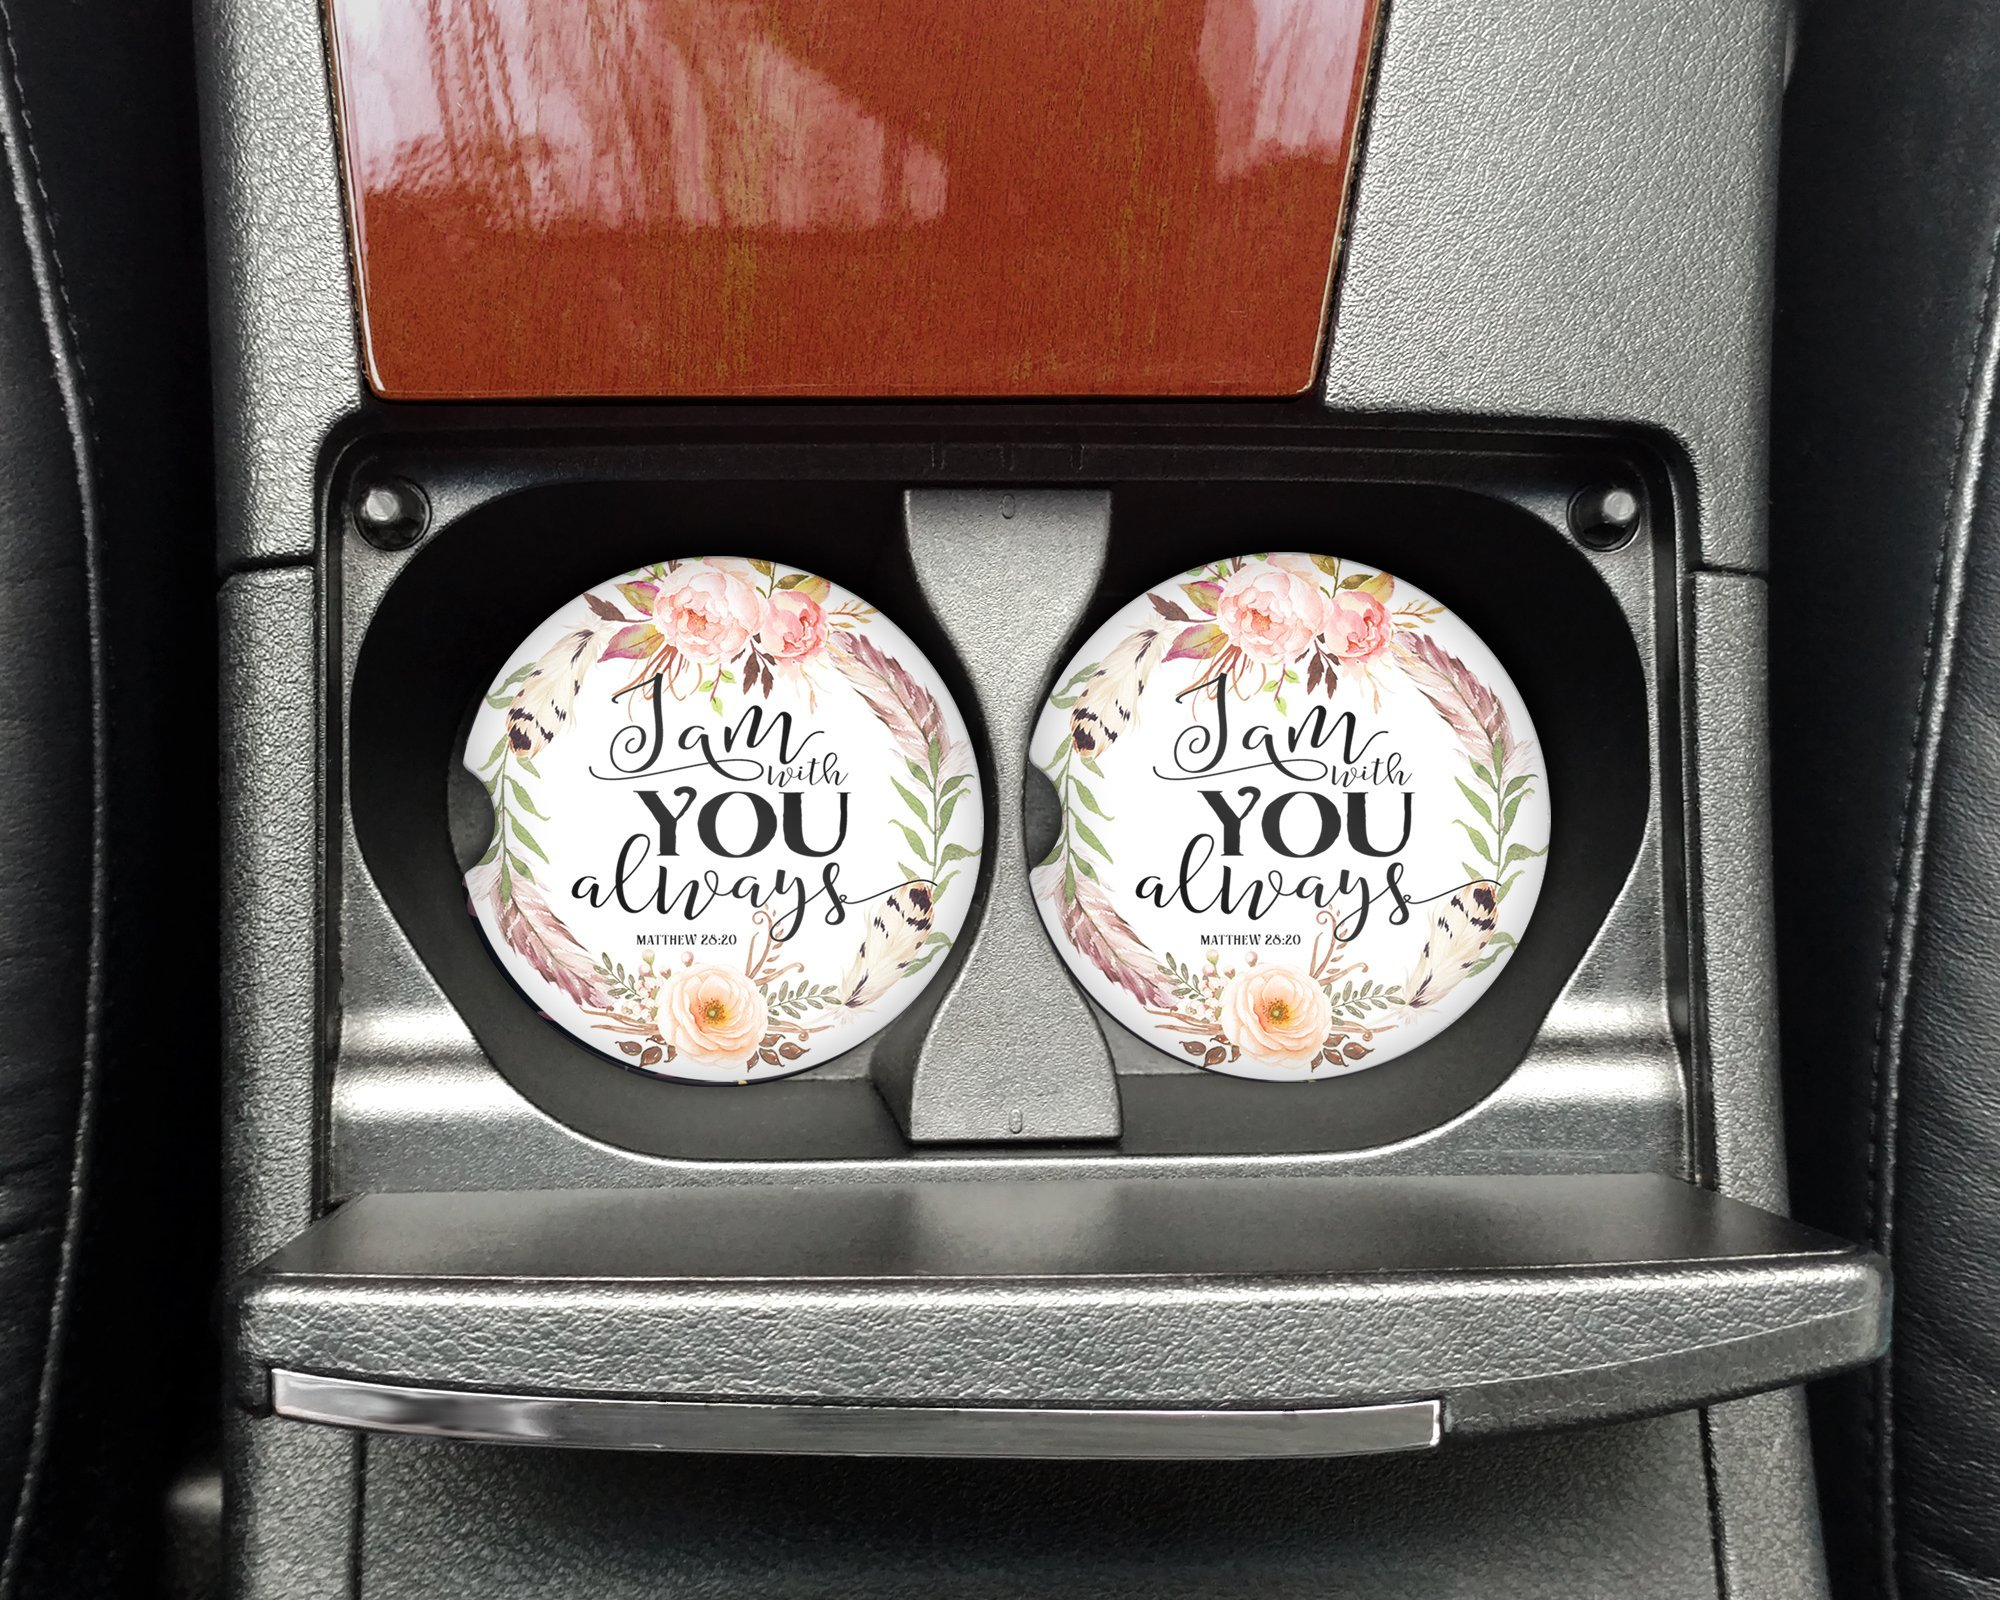 Christian quote - I am with you always - Car coasters - Sandstone auto cup holder coasters - Gifts for women